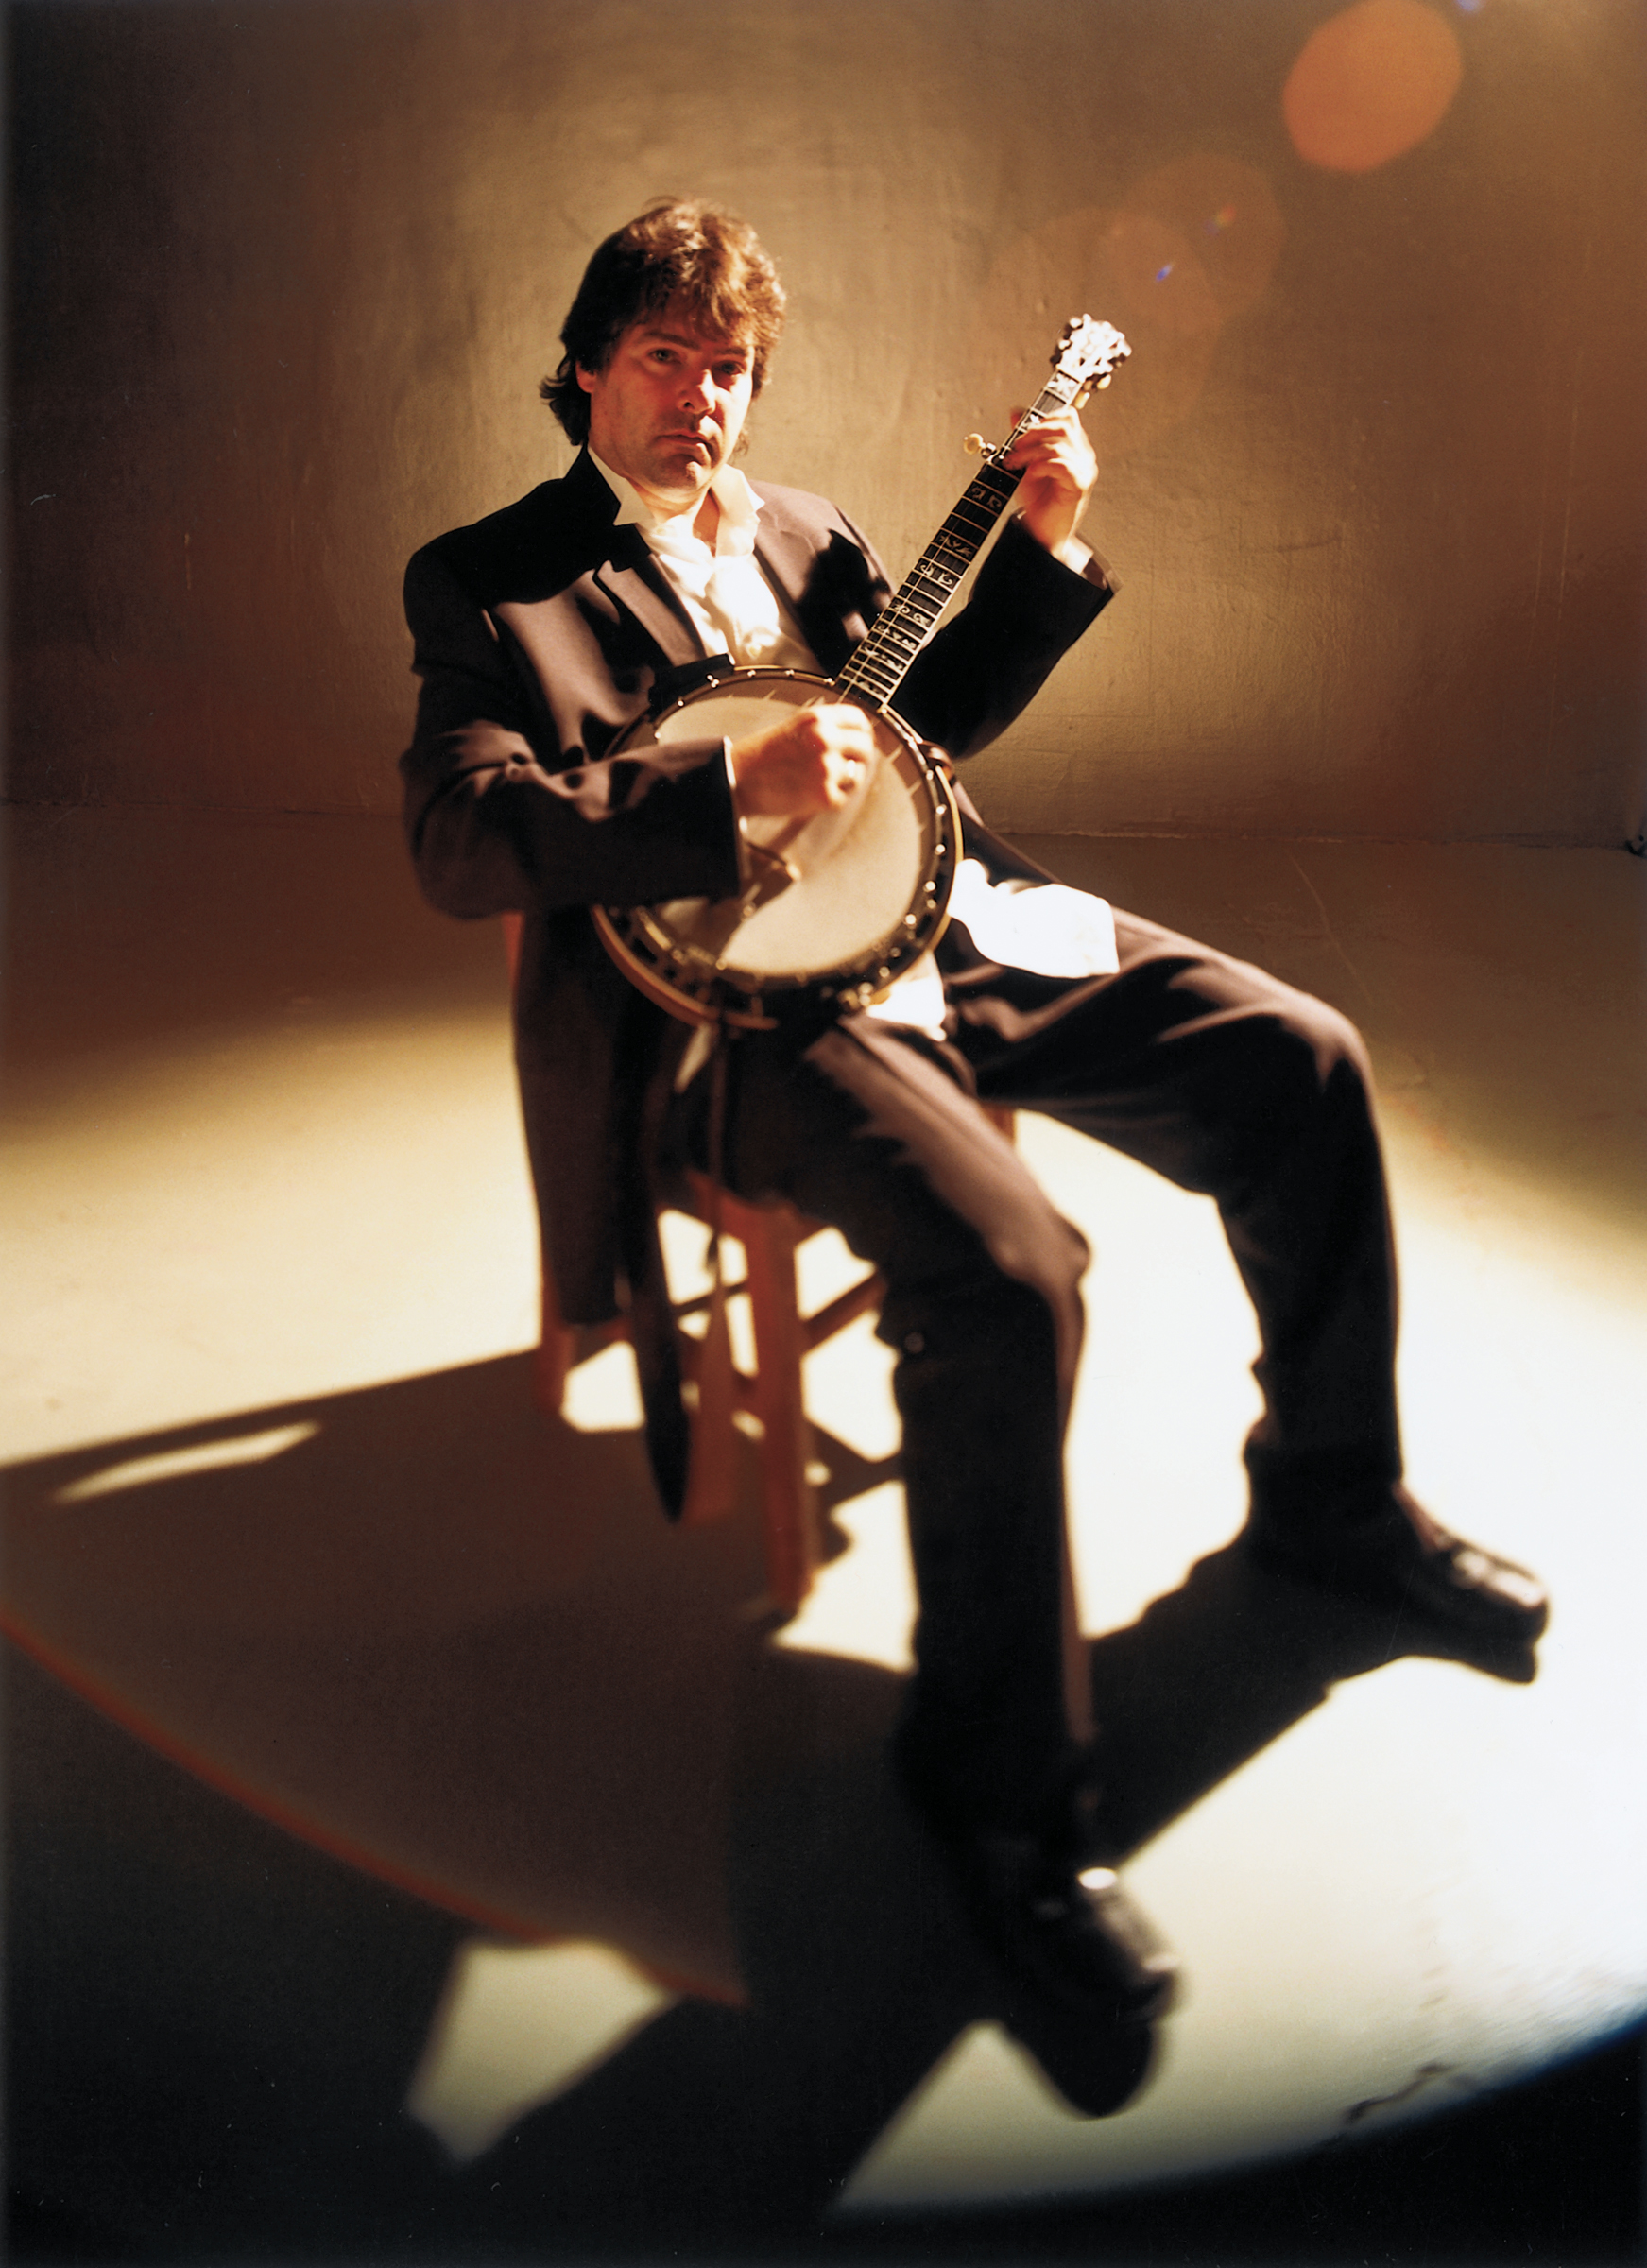 Caption: Bela Fleck, Credit: Bela Fleck